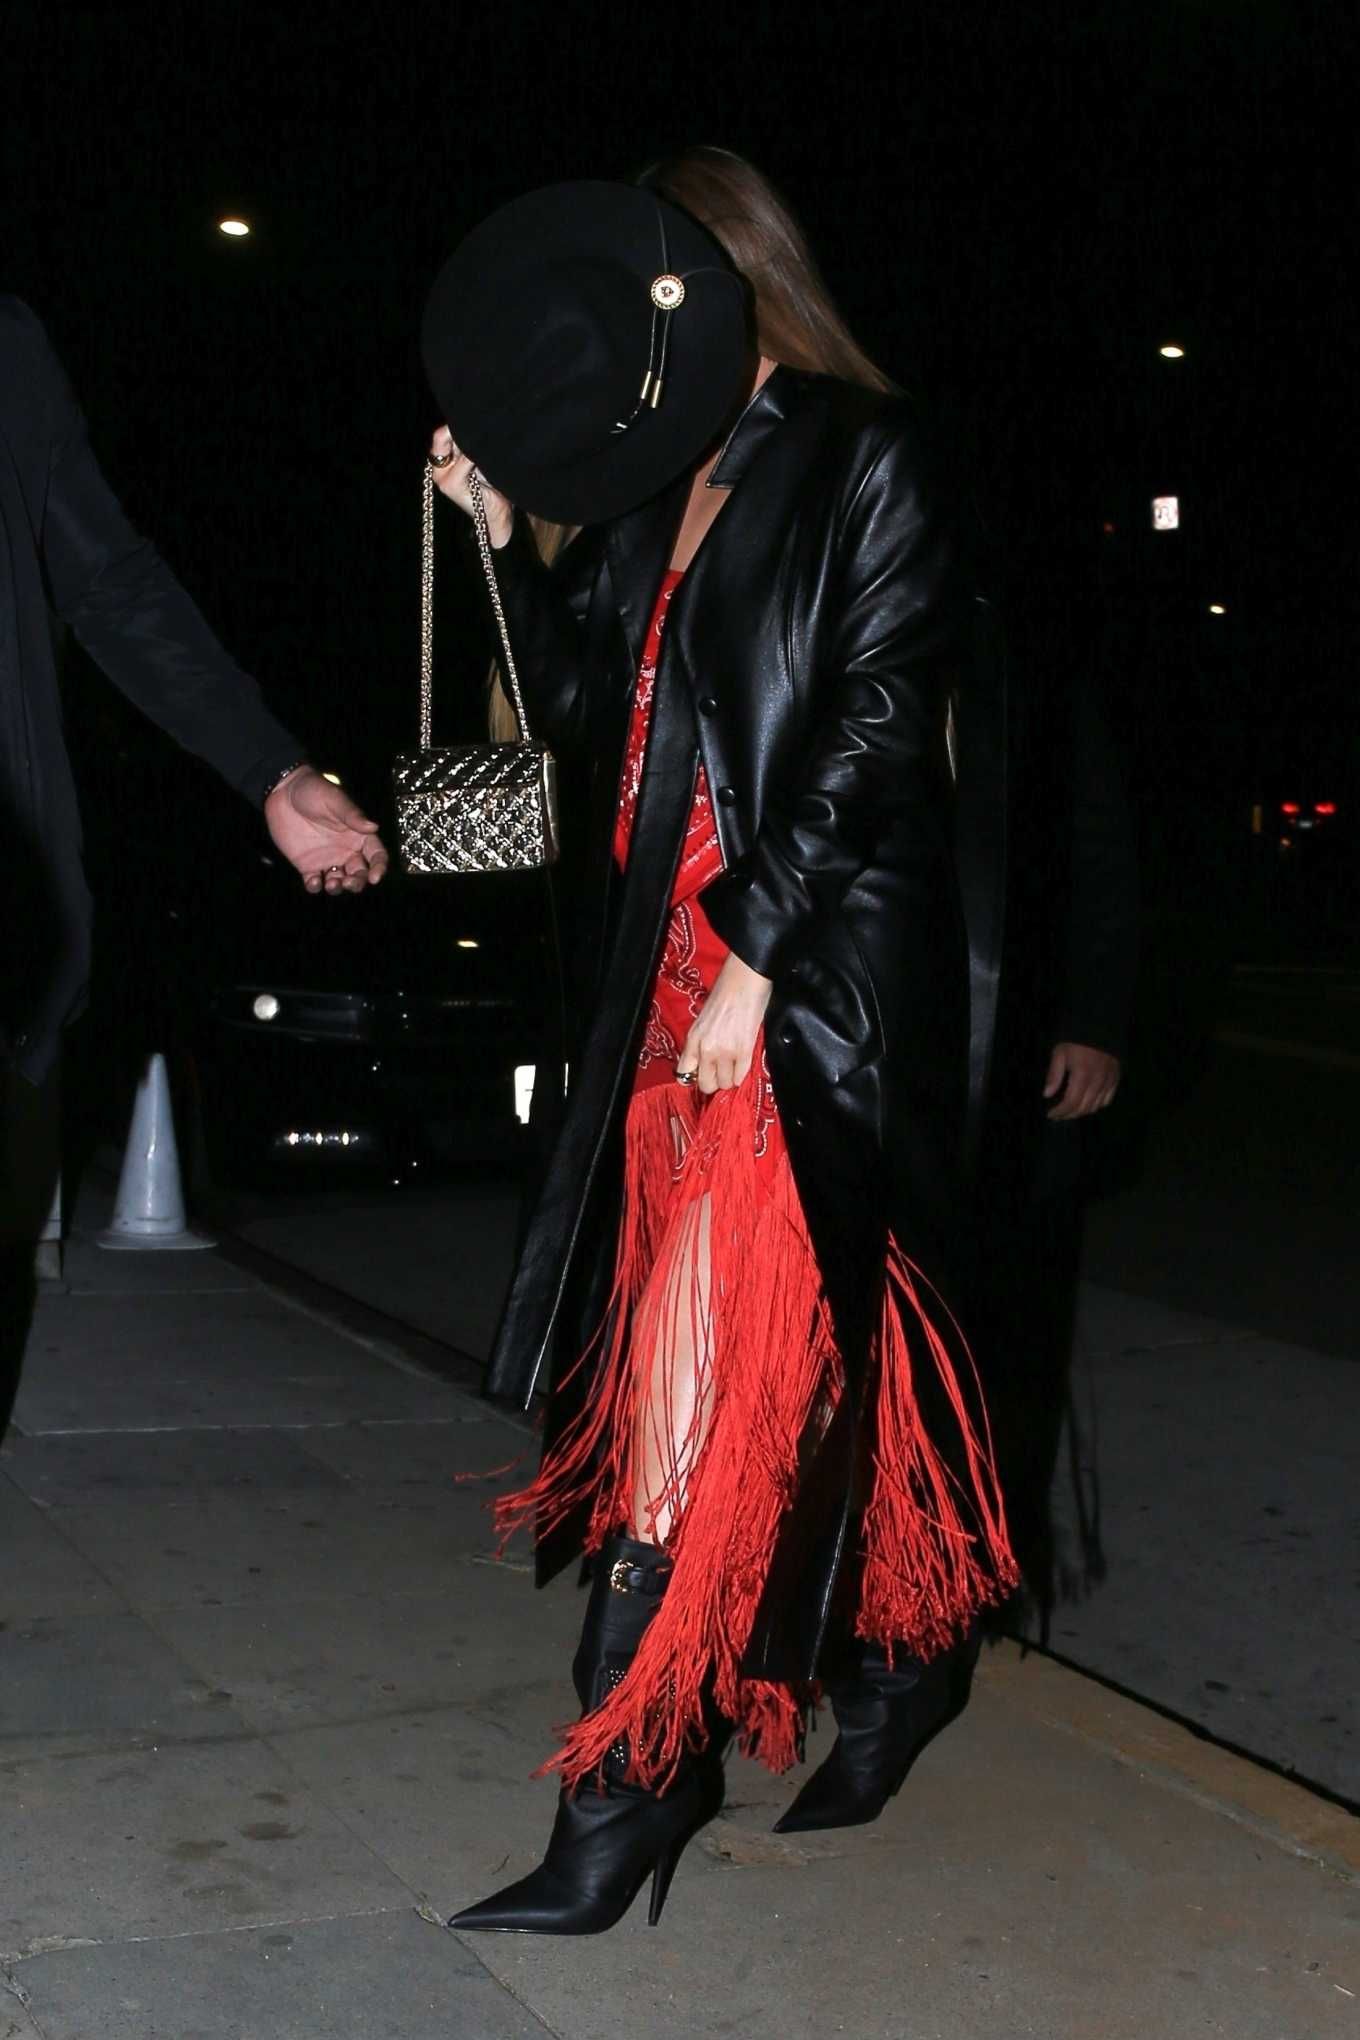 Kylie Jenner rocking a Plunging red two piece separates dress with asymmetric design and fringed hem